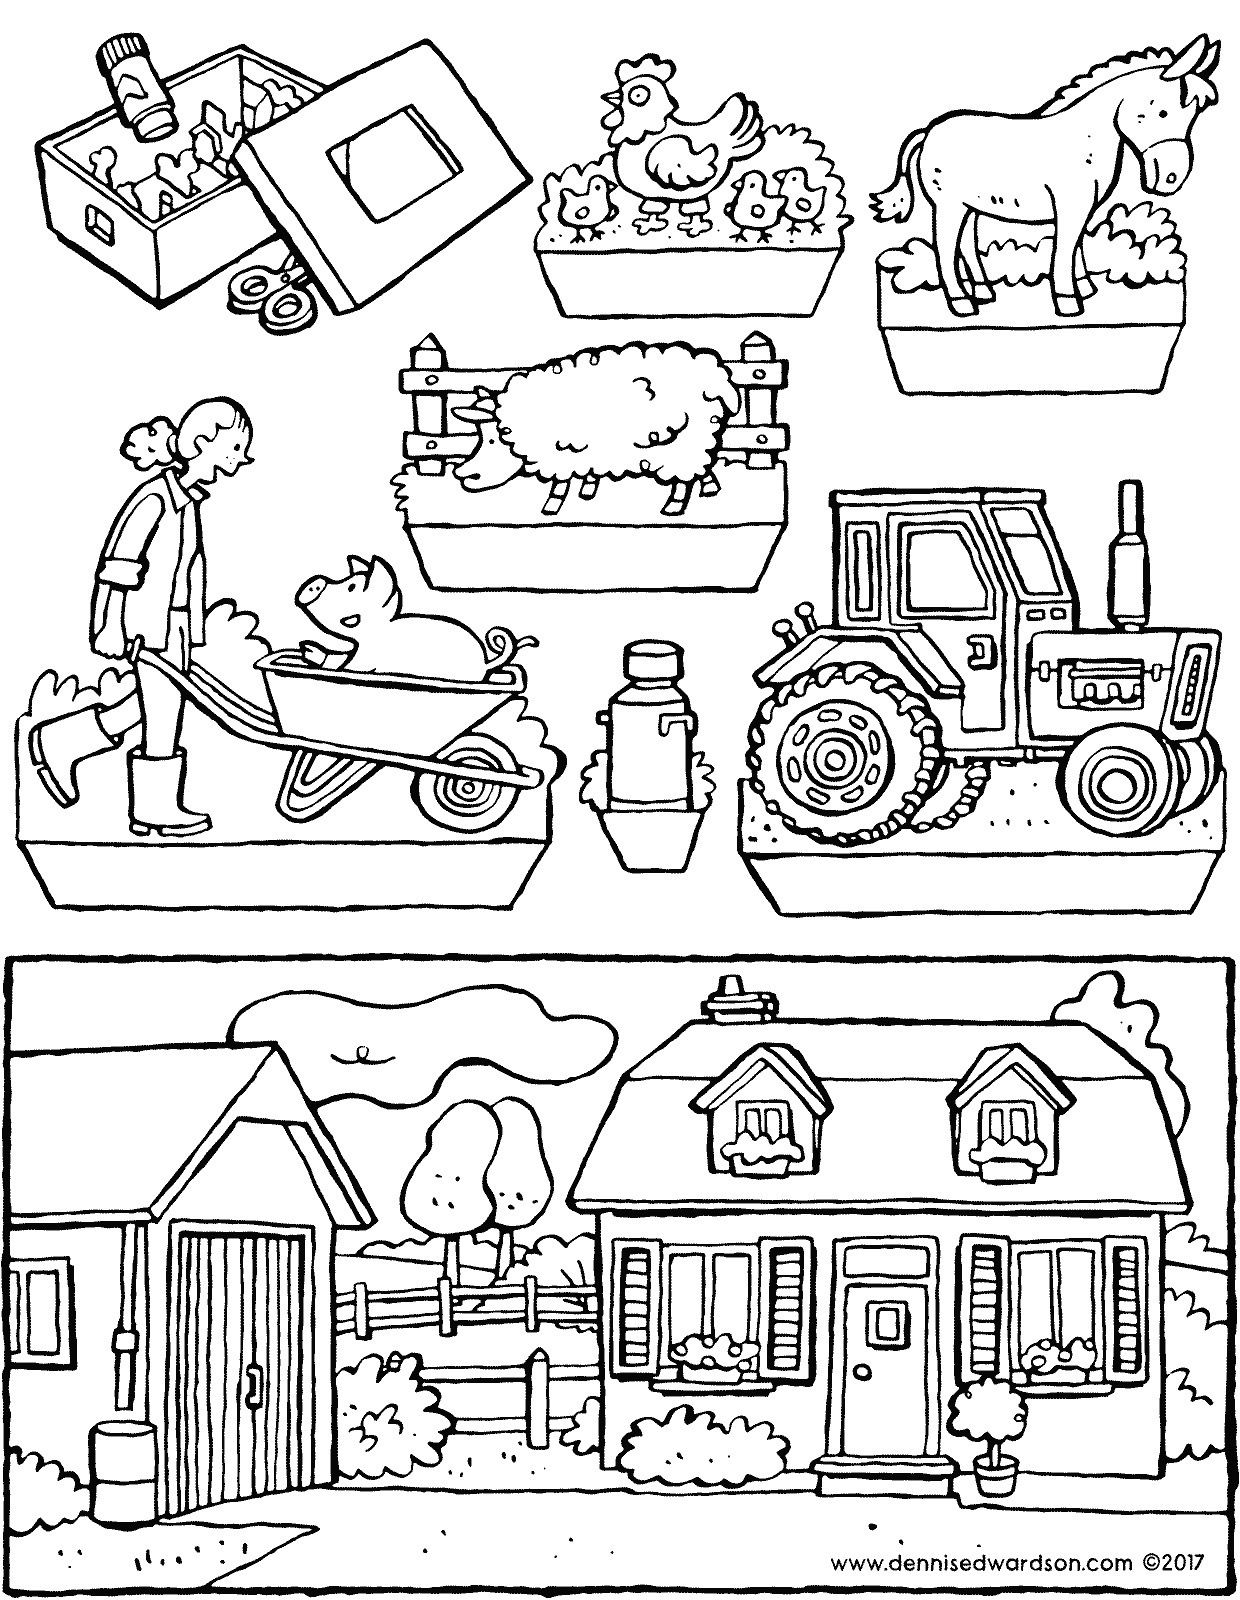 farm diorama • use this picture of a farm to make a